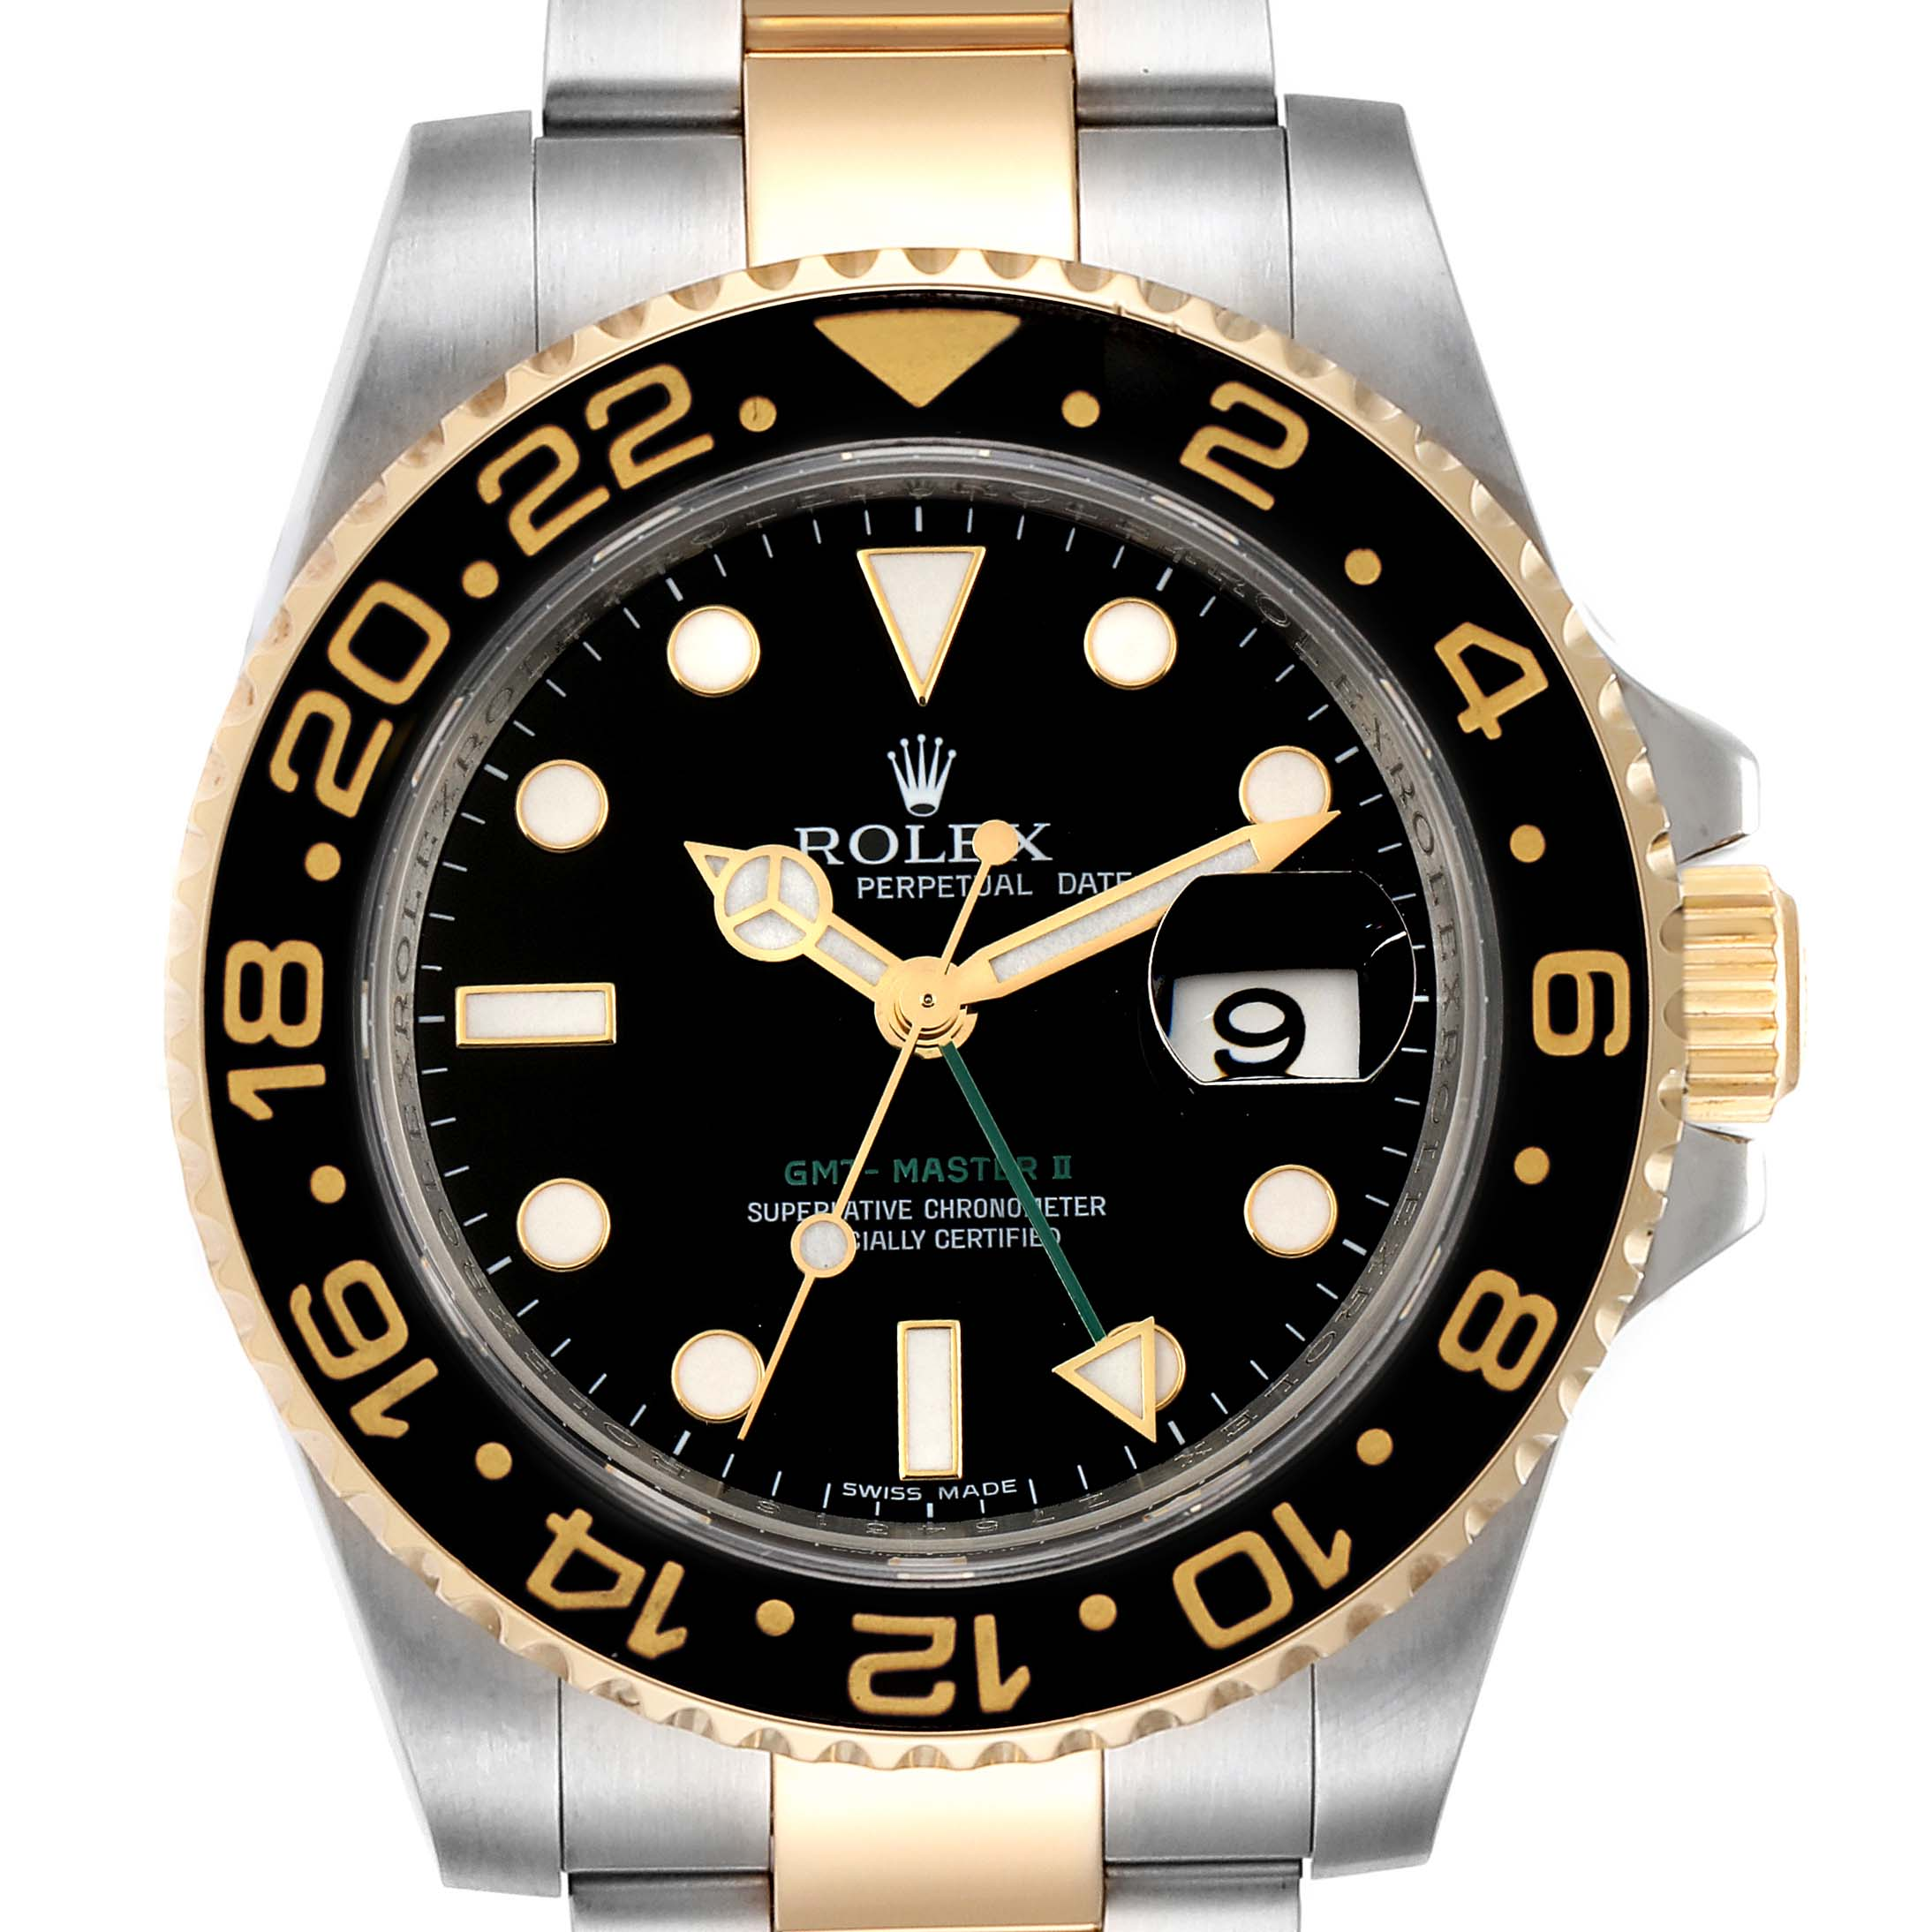 Photo of Rolex GMT Master II Yellow Gold Steel Mens Watch 116713 Box Papers